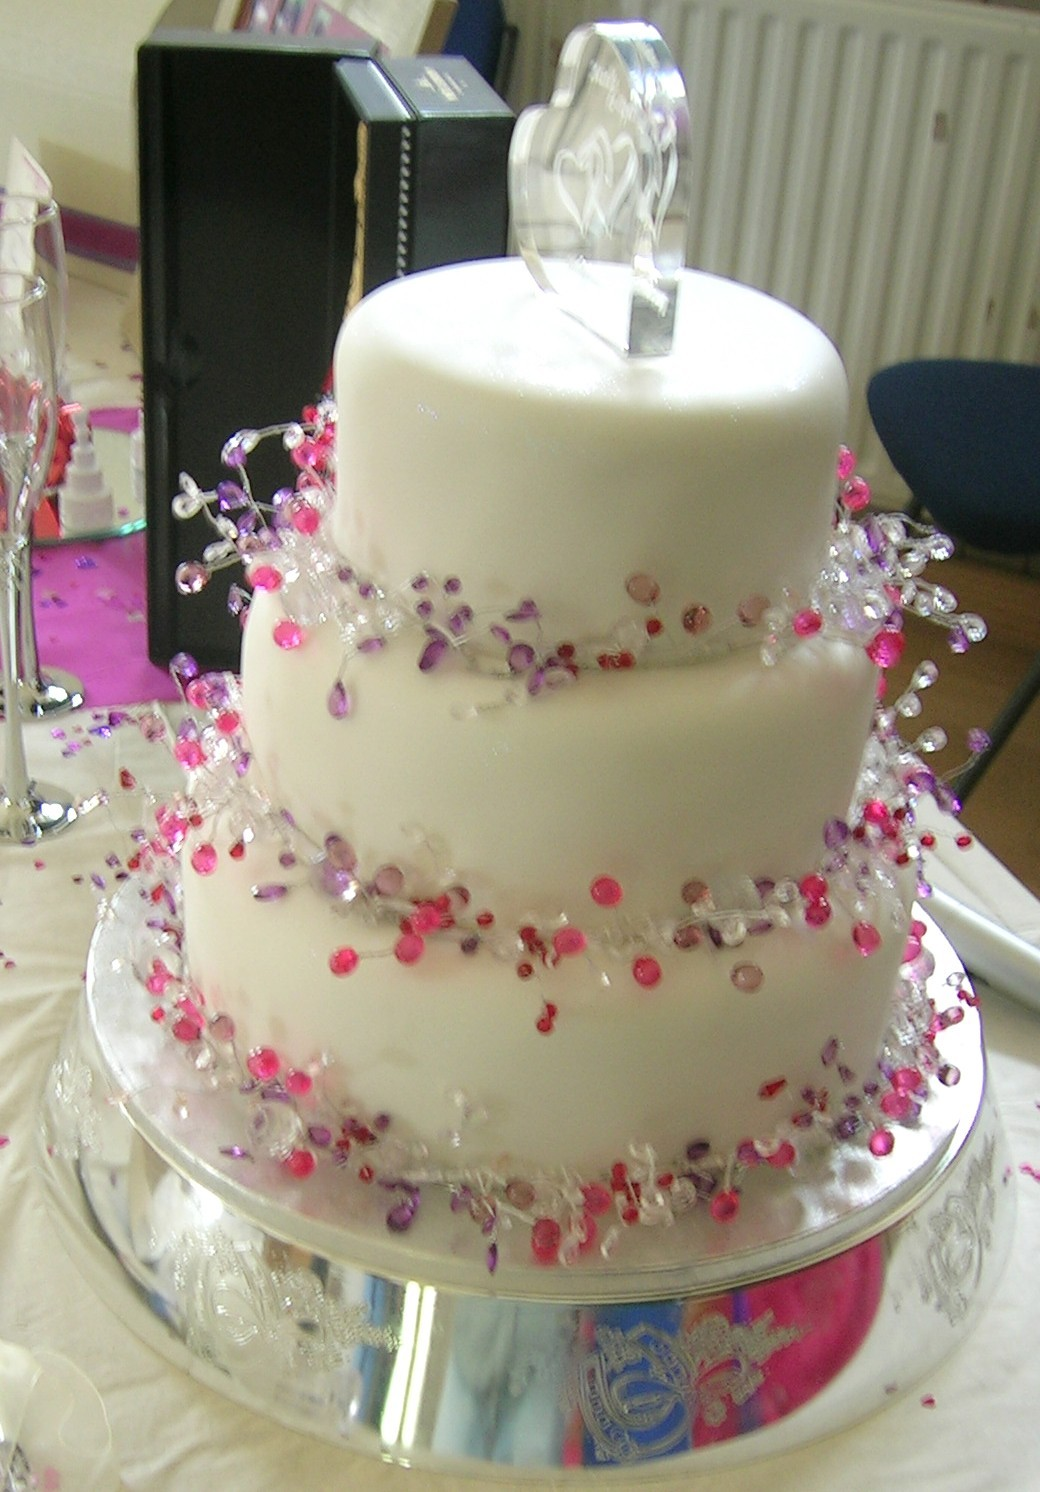 Decorative Cake Making Companies Near Me